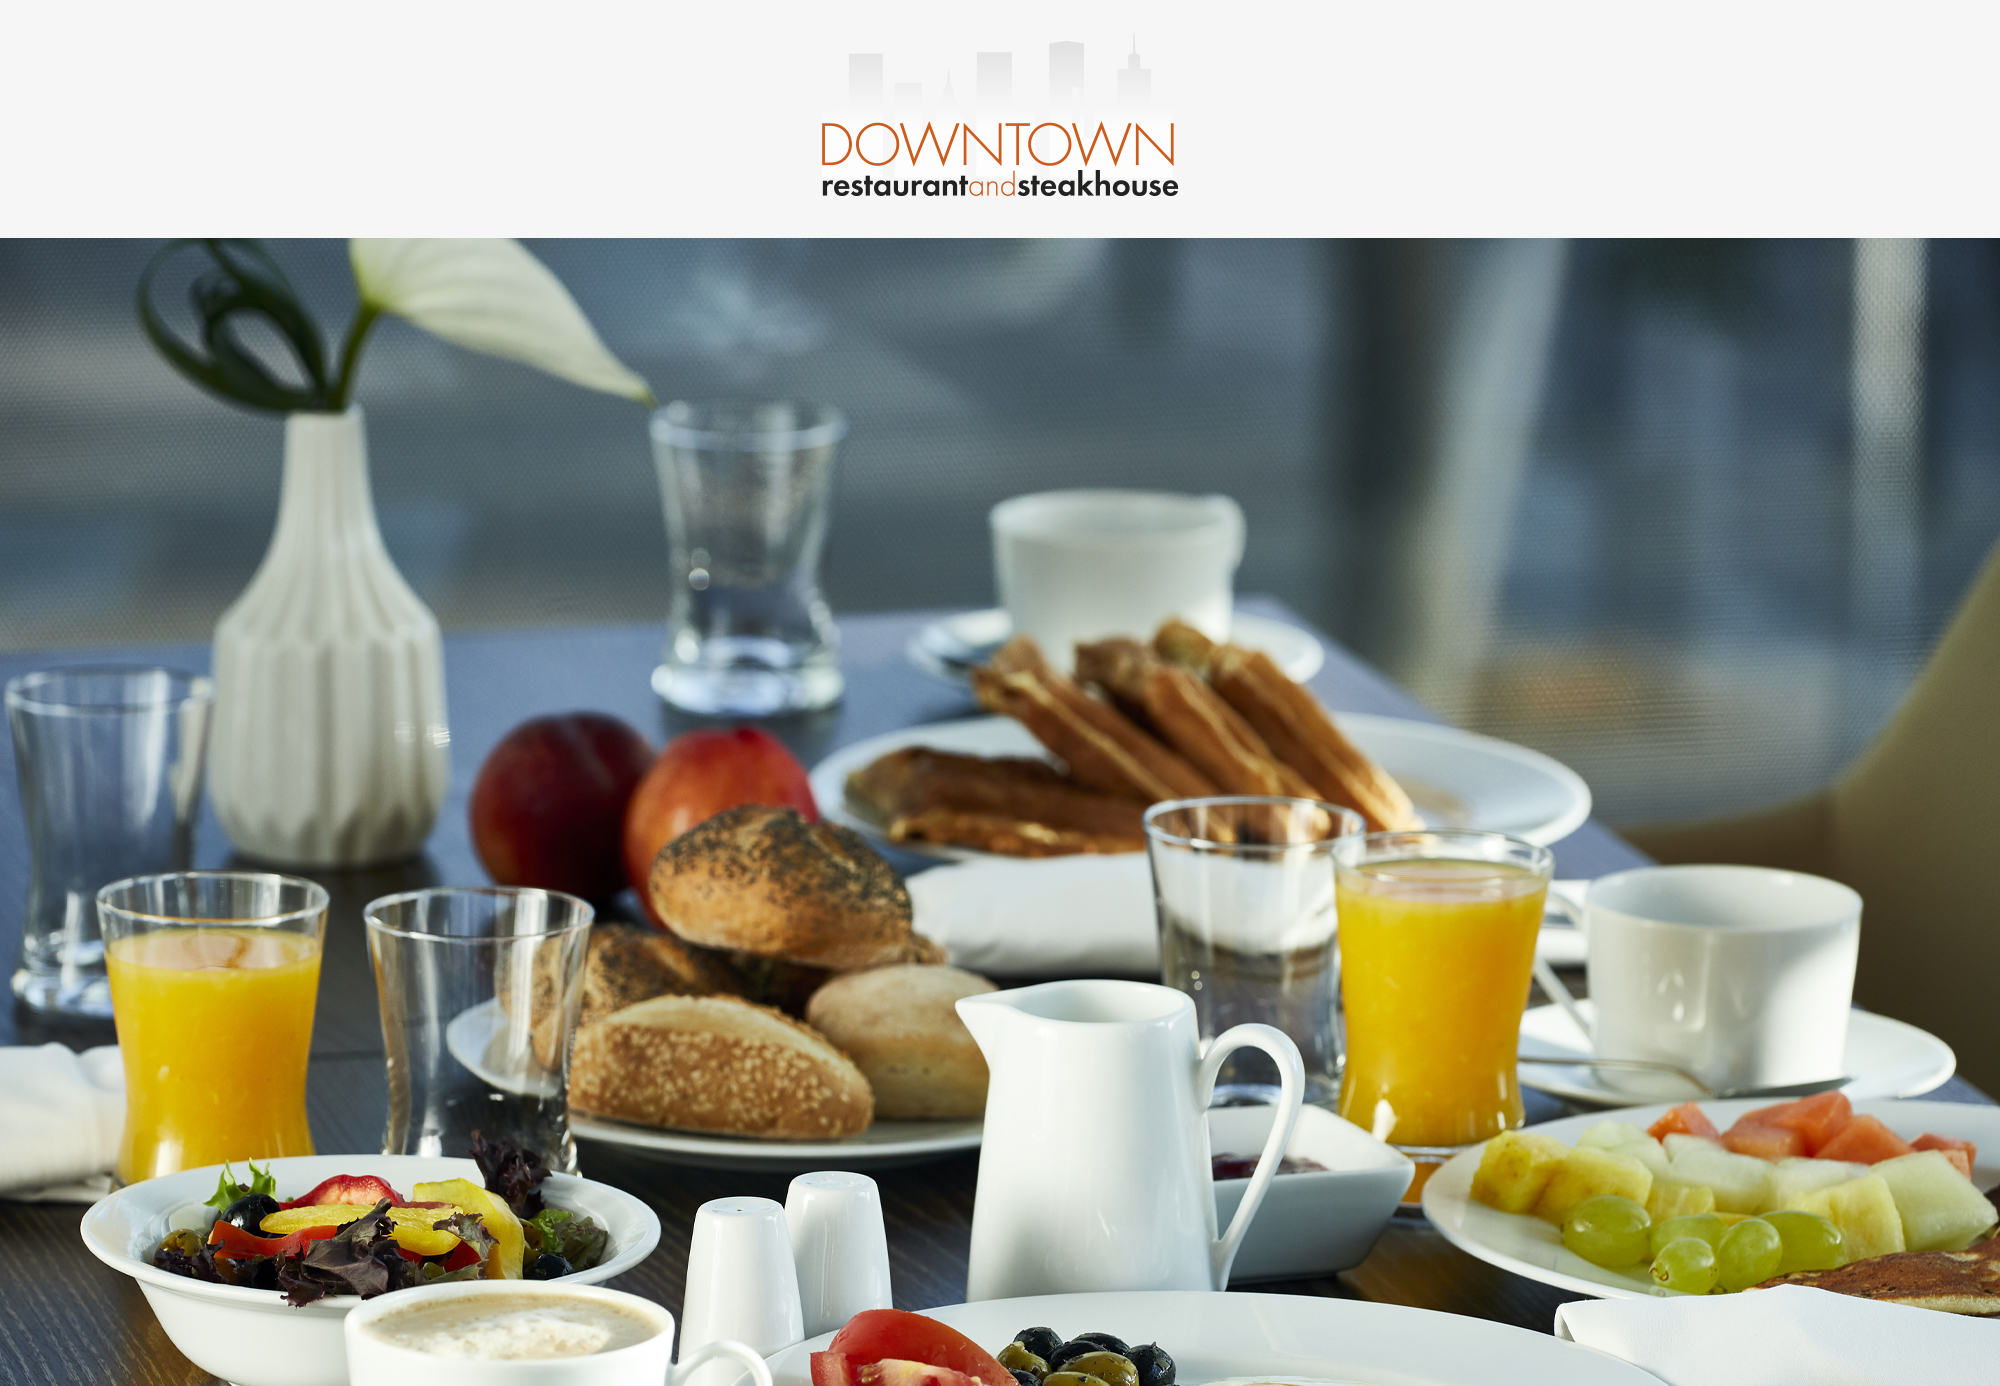 Breakfast buffet in DownTown Restaurant for one person